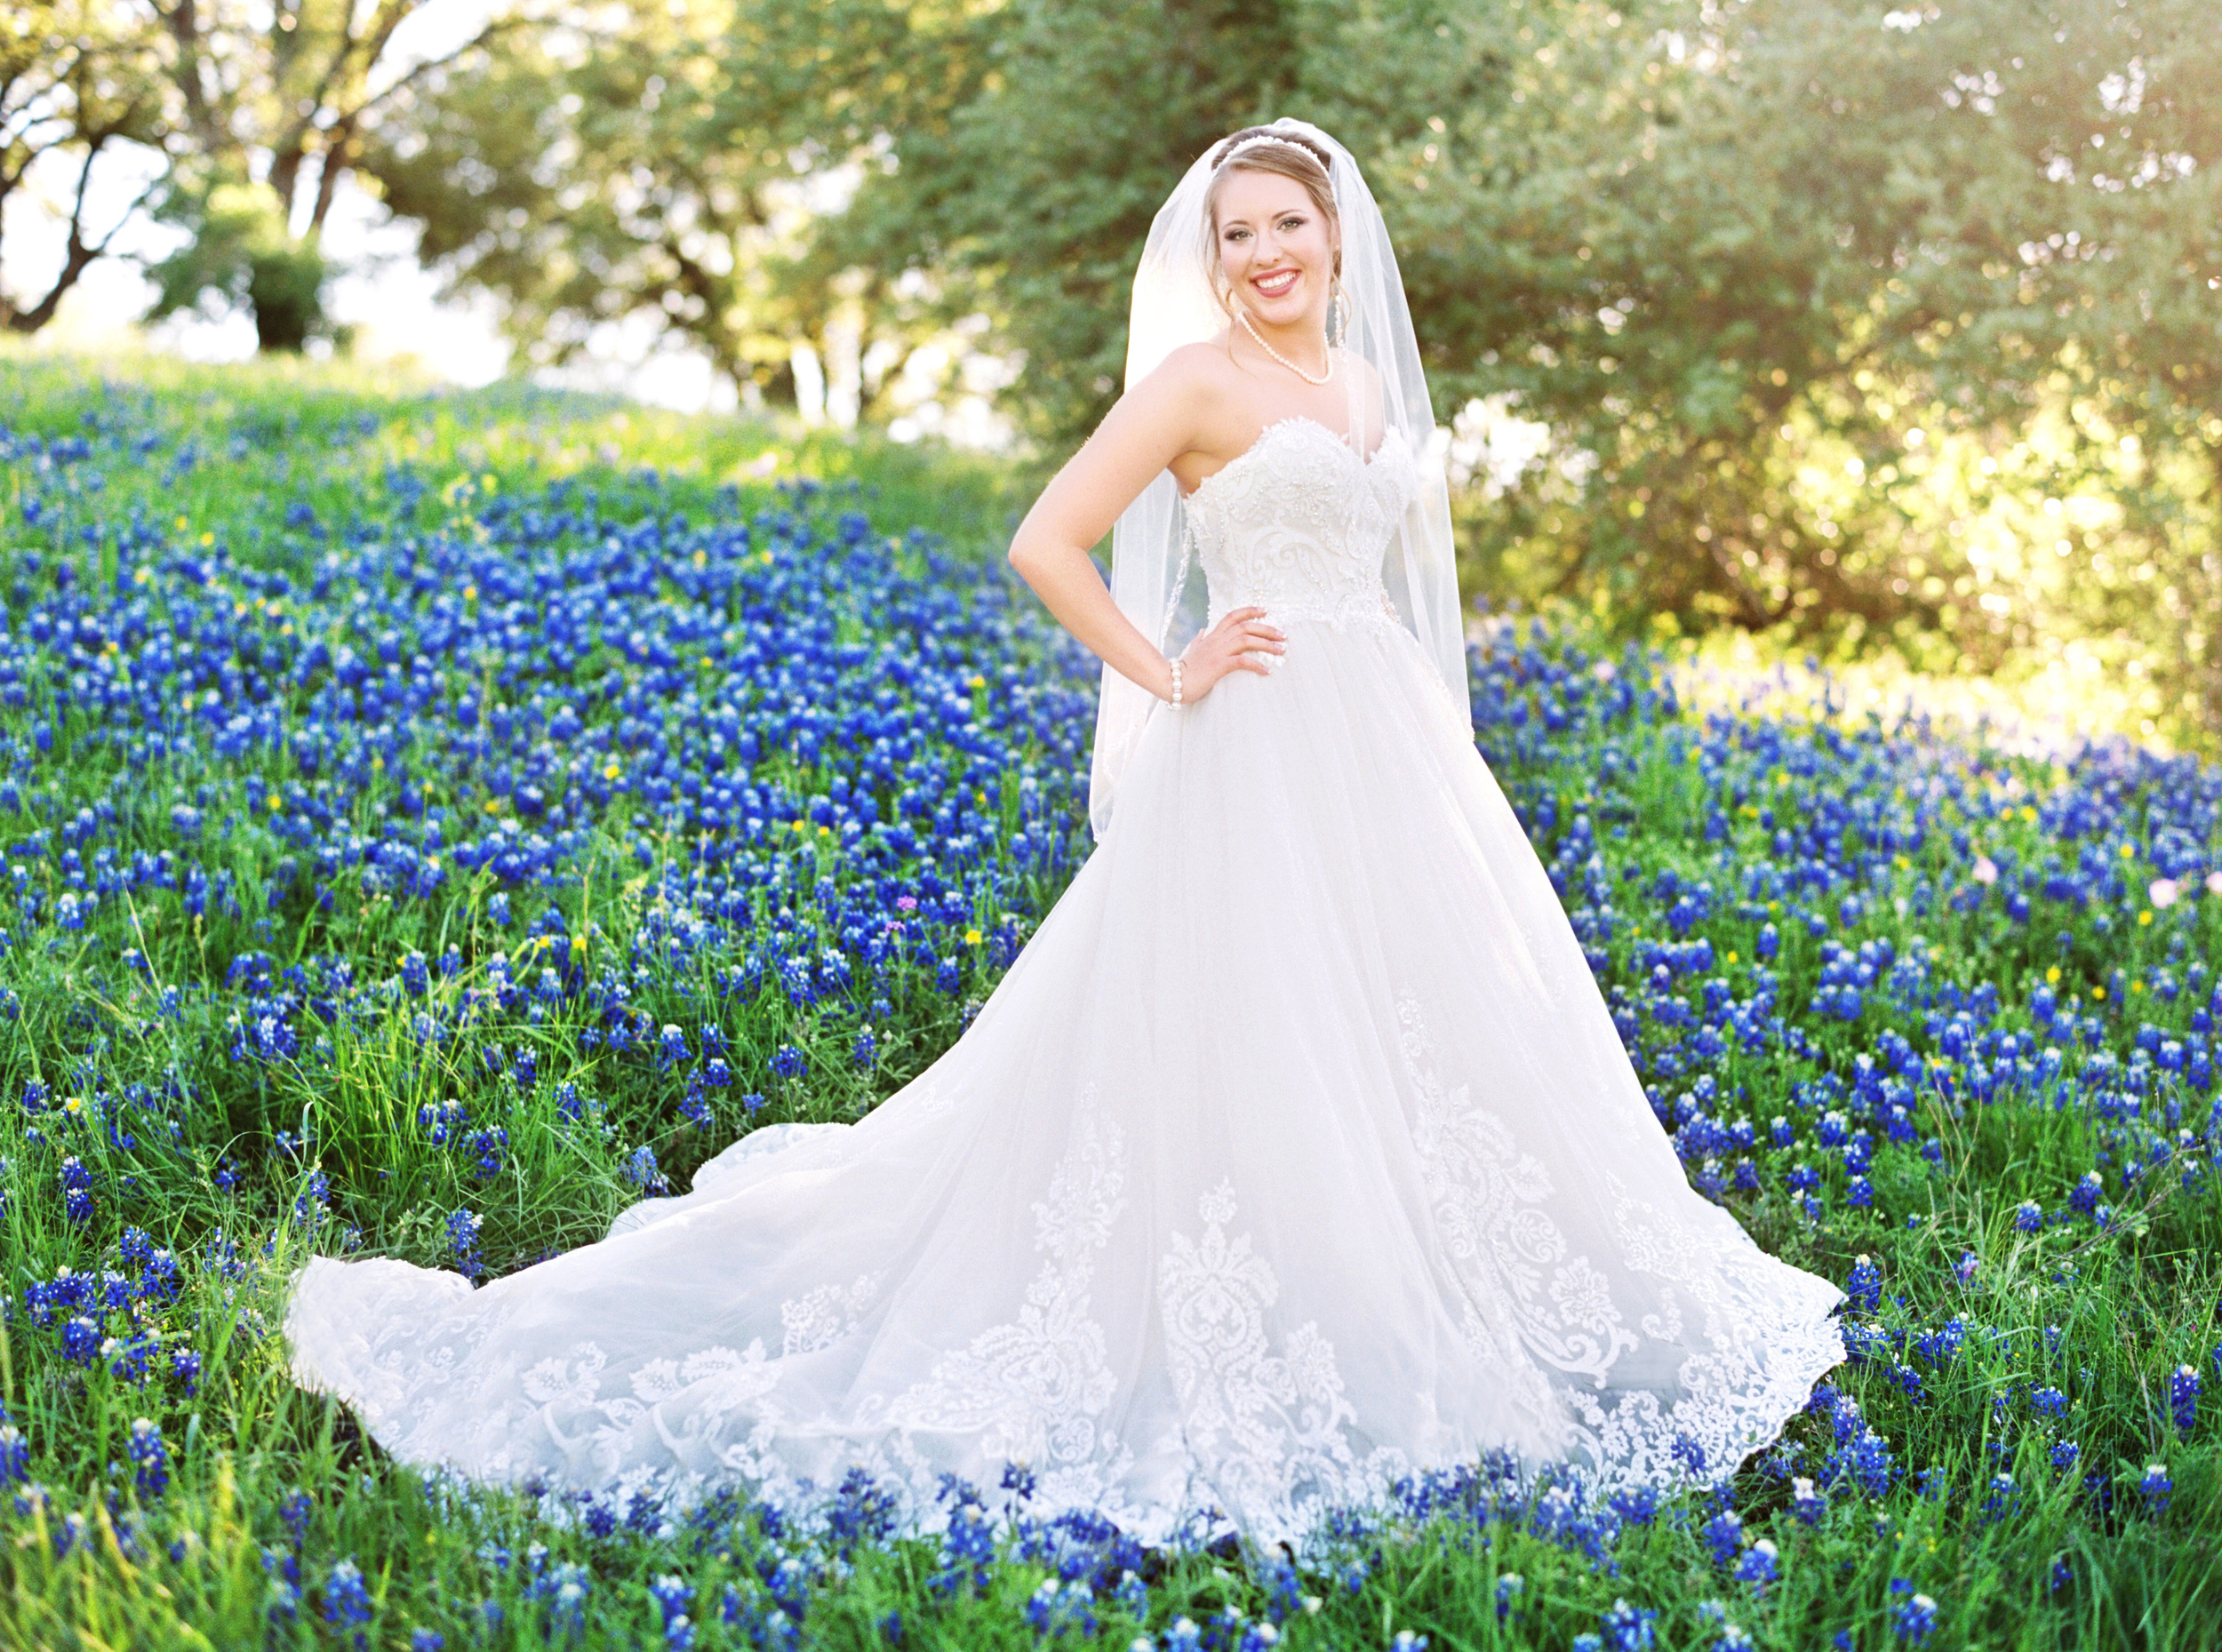 Awesome wedding dresses lubbock tx images wedding ideas generous gown town lubbock tx contemporary images for wedding gown ombrellifo Gallery